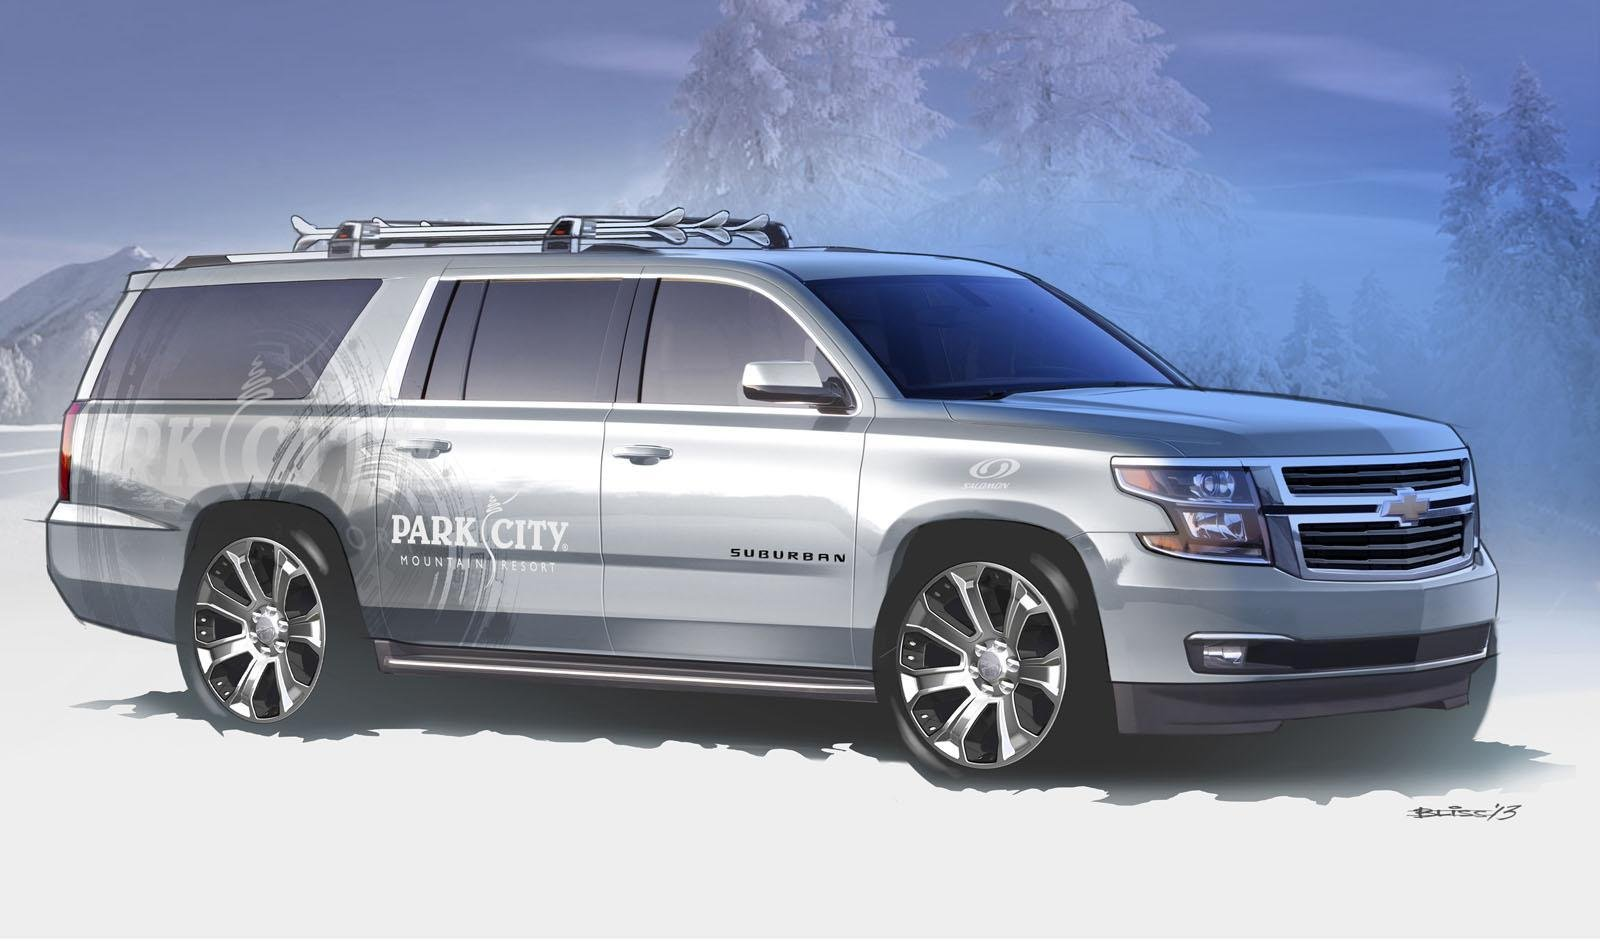 2015 Chevrolet Suburban Half-Pipe Concept | Top Speed